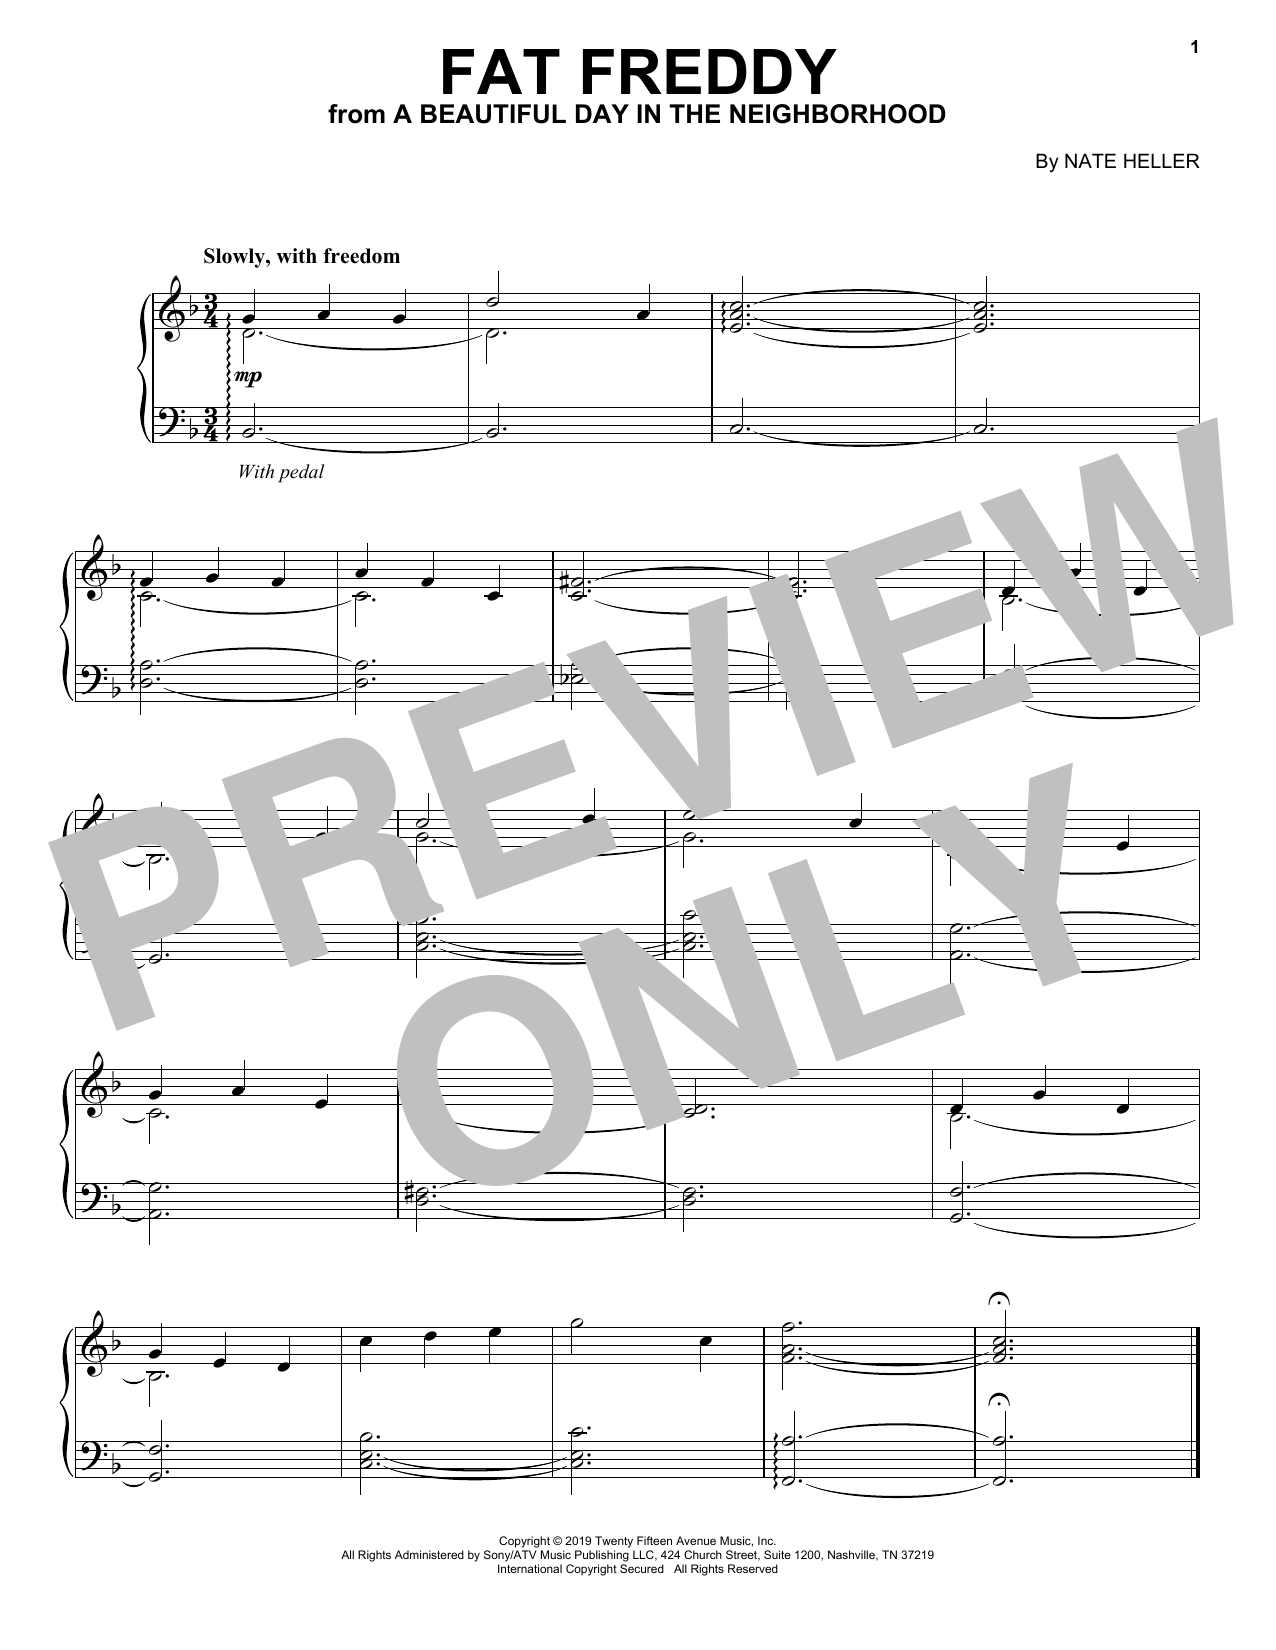 Fat Freddy (from A Beautiful Day in the Neighborhood) (Piano Solo)